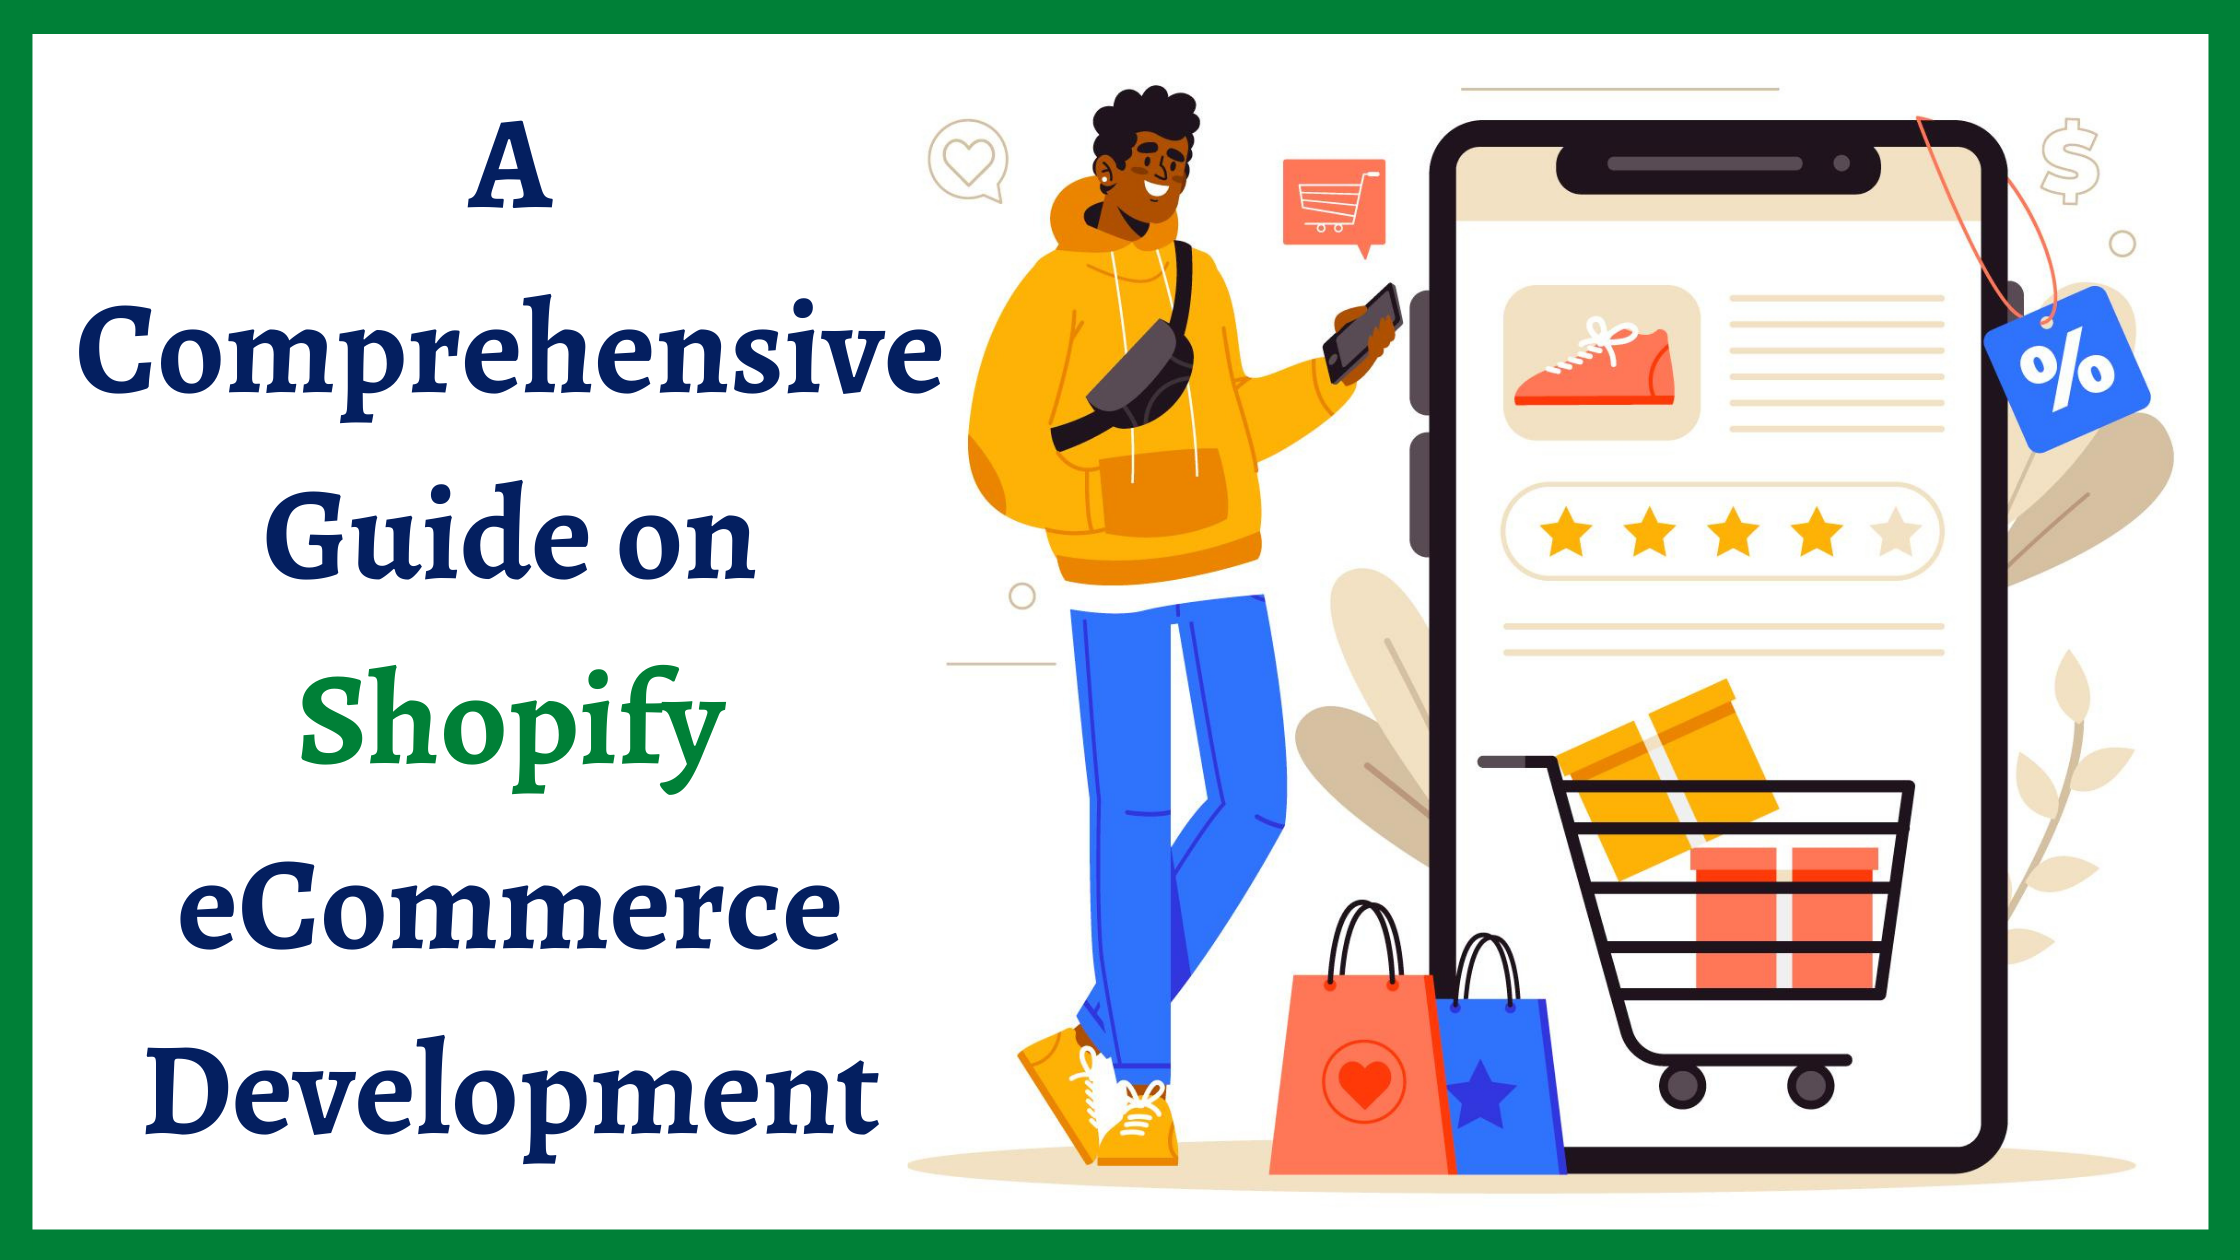 A Comprehensive Guide on Shopify eCommerce Development